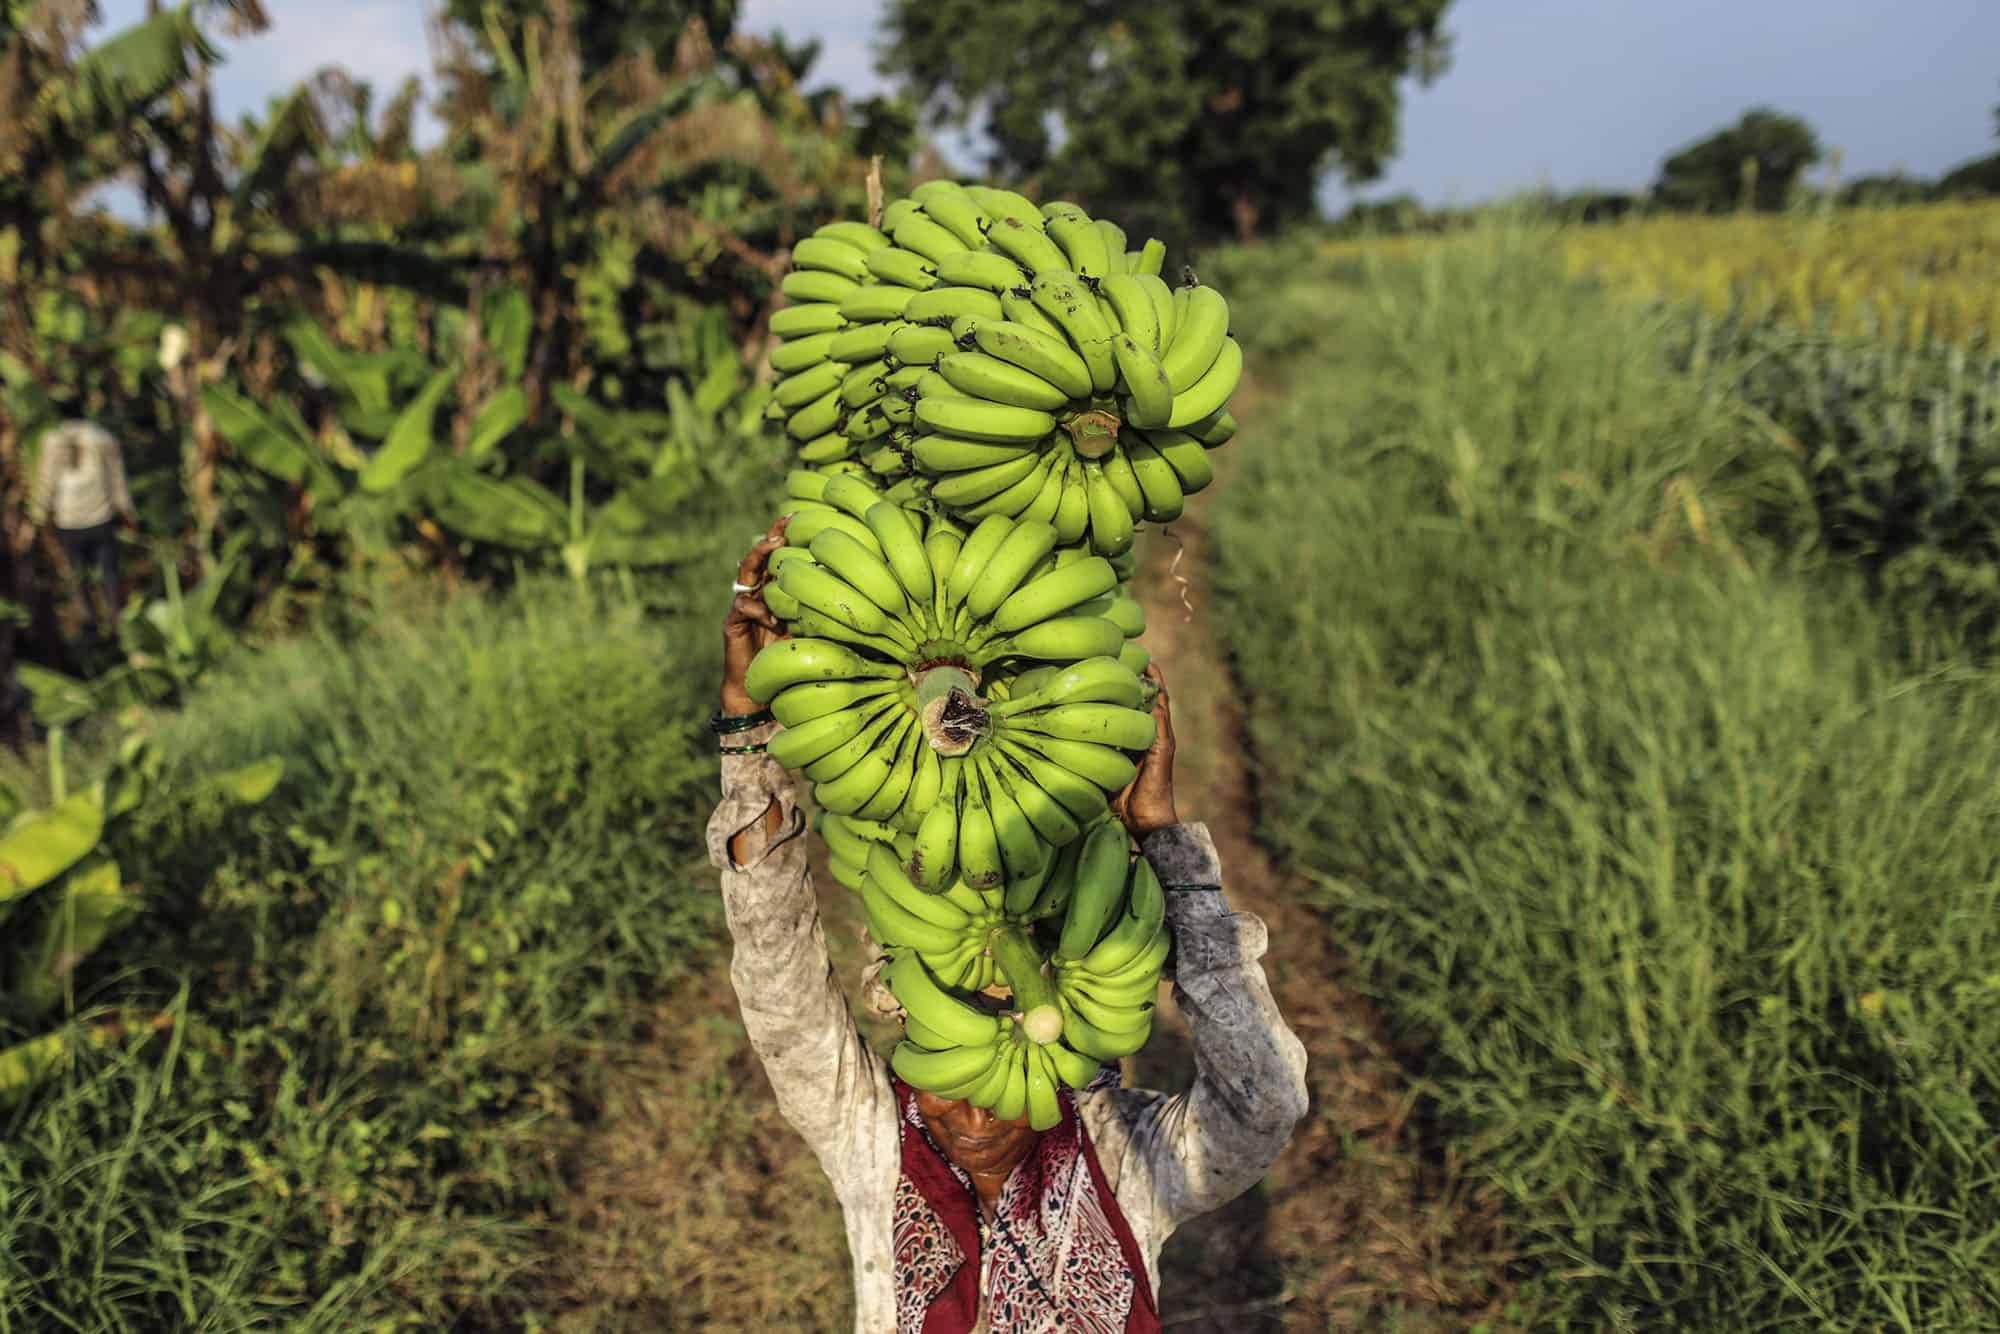 A day laborer carries bananas on her head during harvest in Bhusawal, Maharashtra, India.